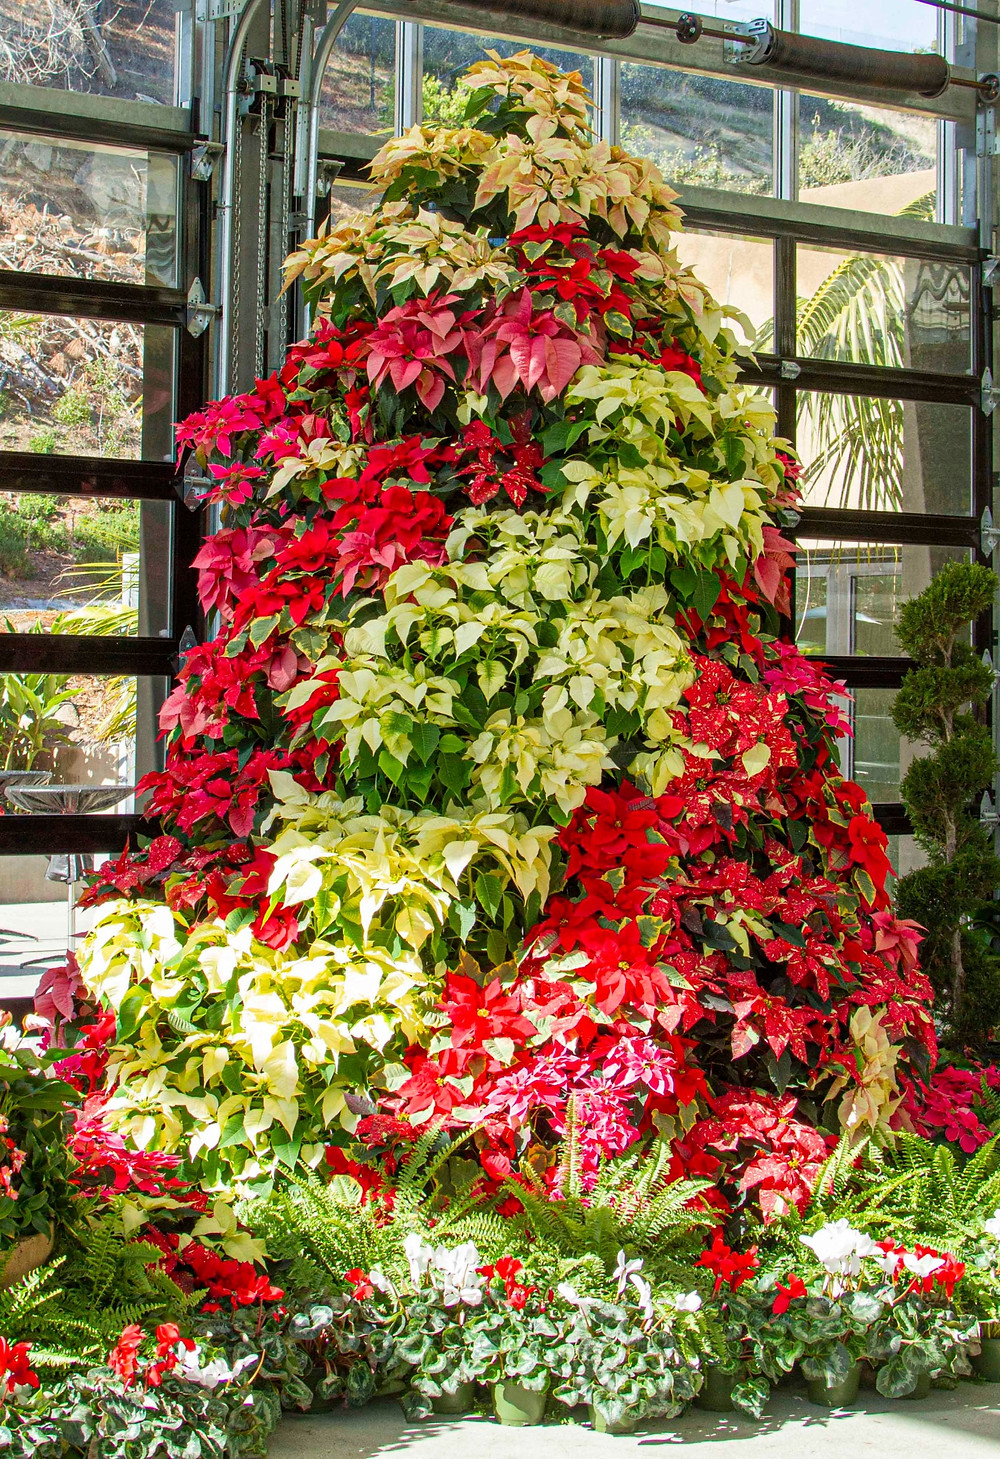 San Diego Botanic Gardens Garden of Lights Best Top Holiday Christmas events activities list guide for families kids are still happening in San Diego December 2020 what to do this year